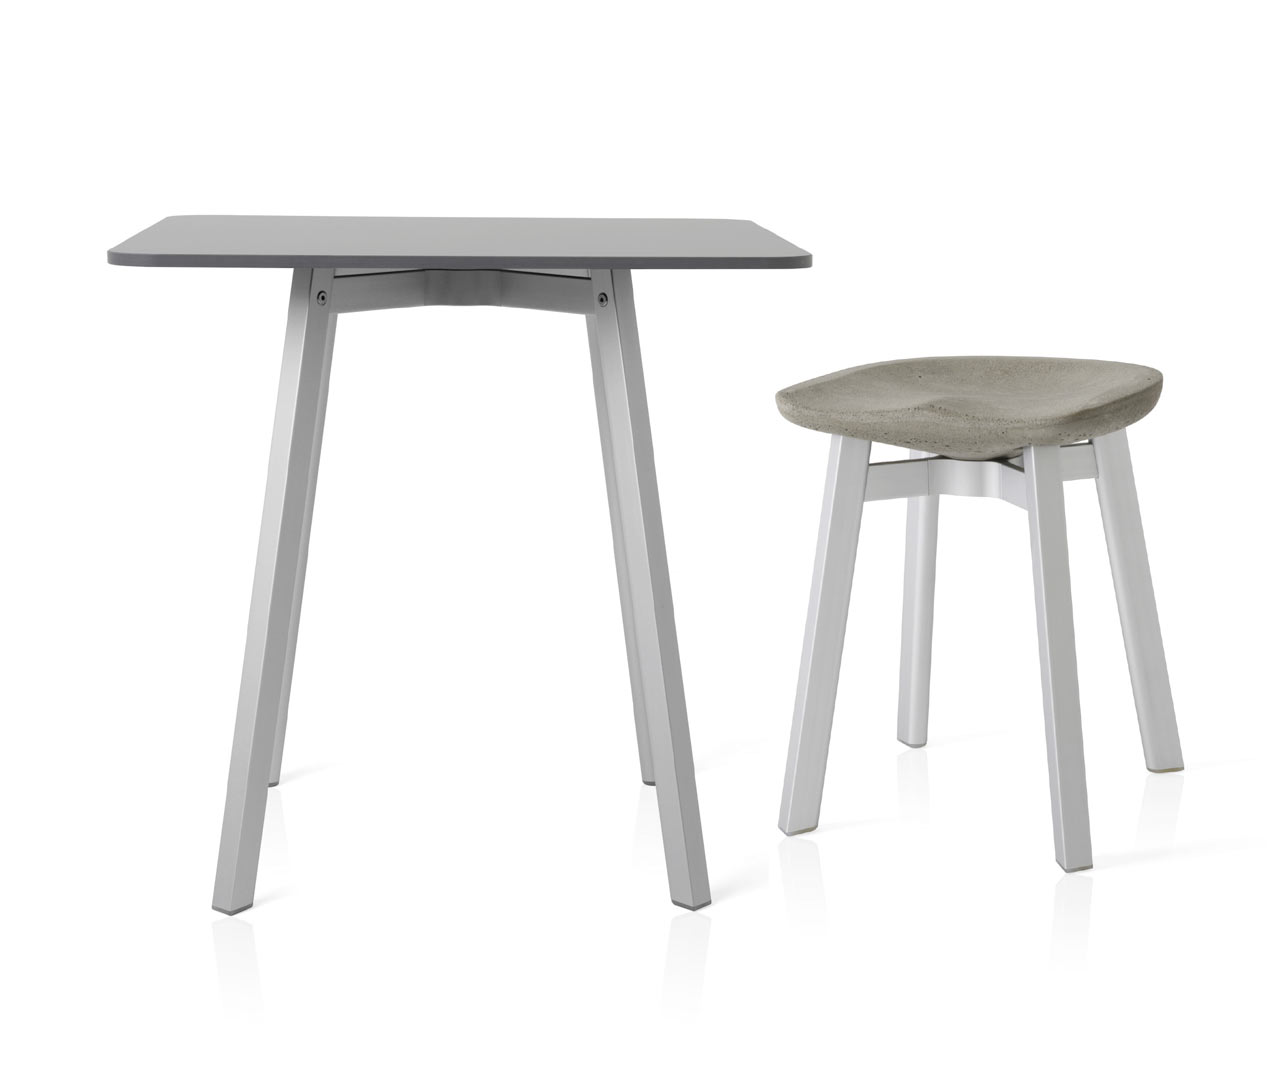 SU Collection by Nendo for Emeco